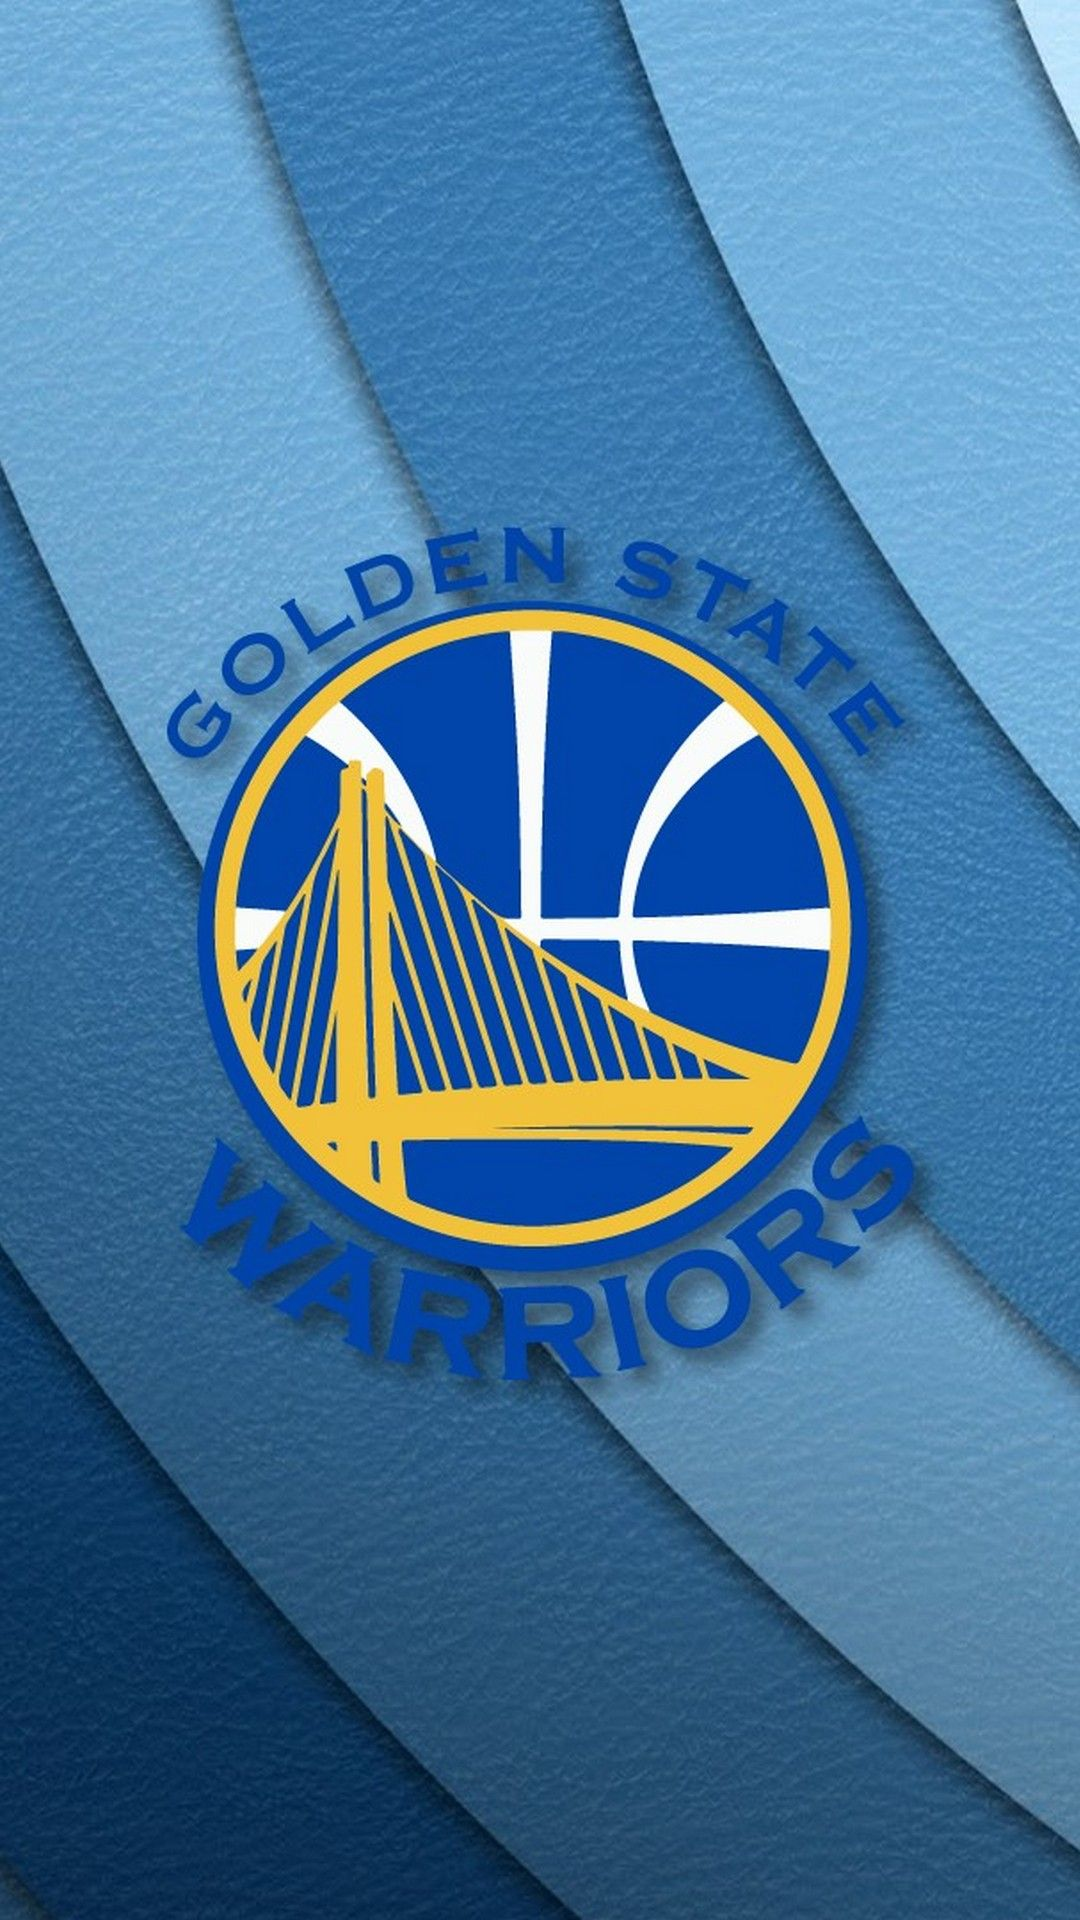 Golden State HD Wallpaper For iPhone is the perfect High